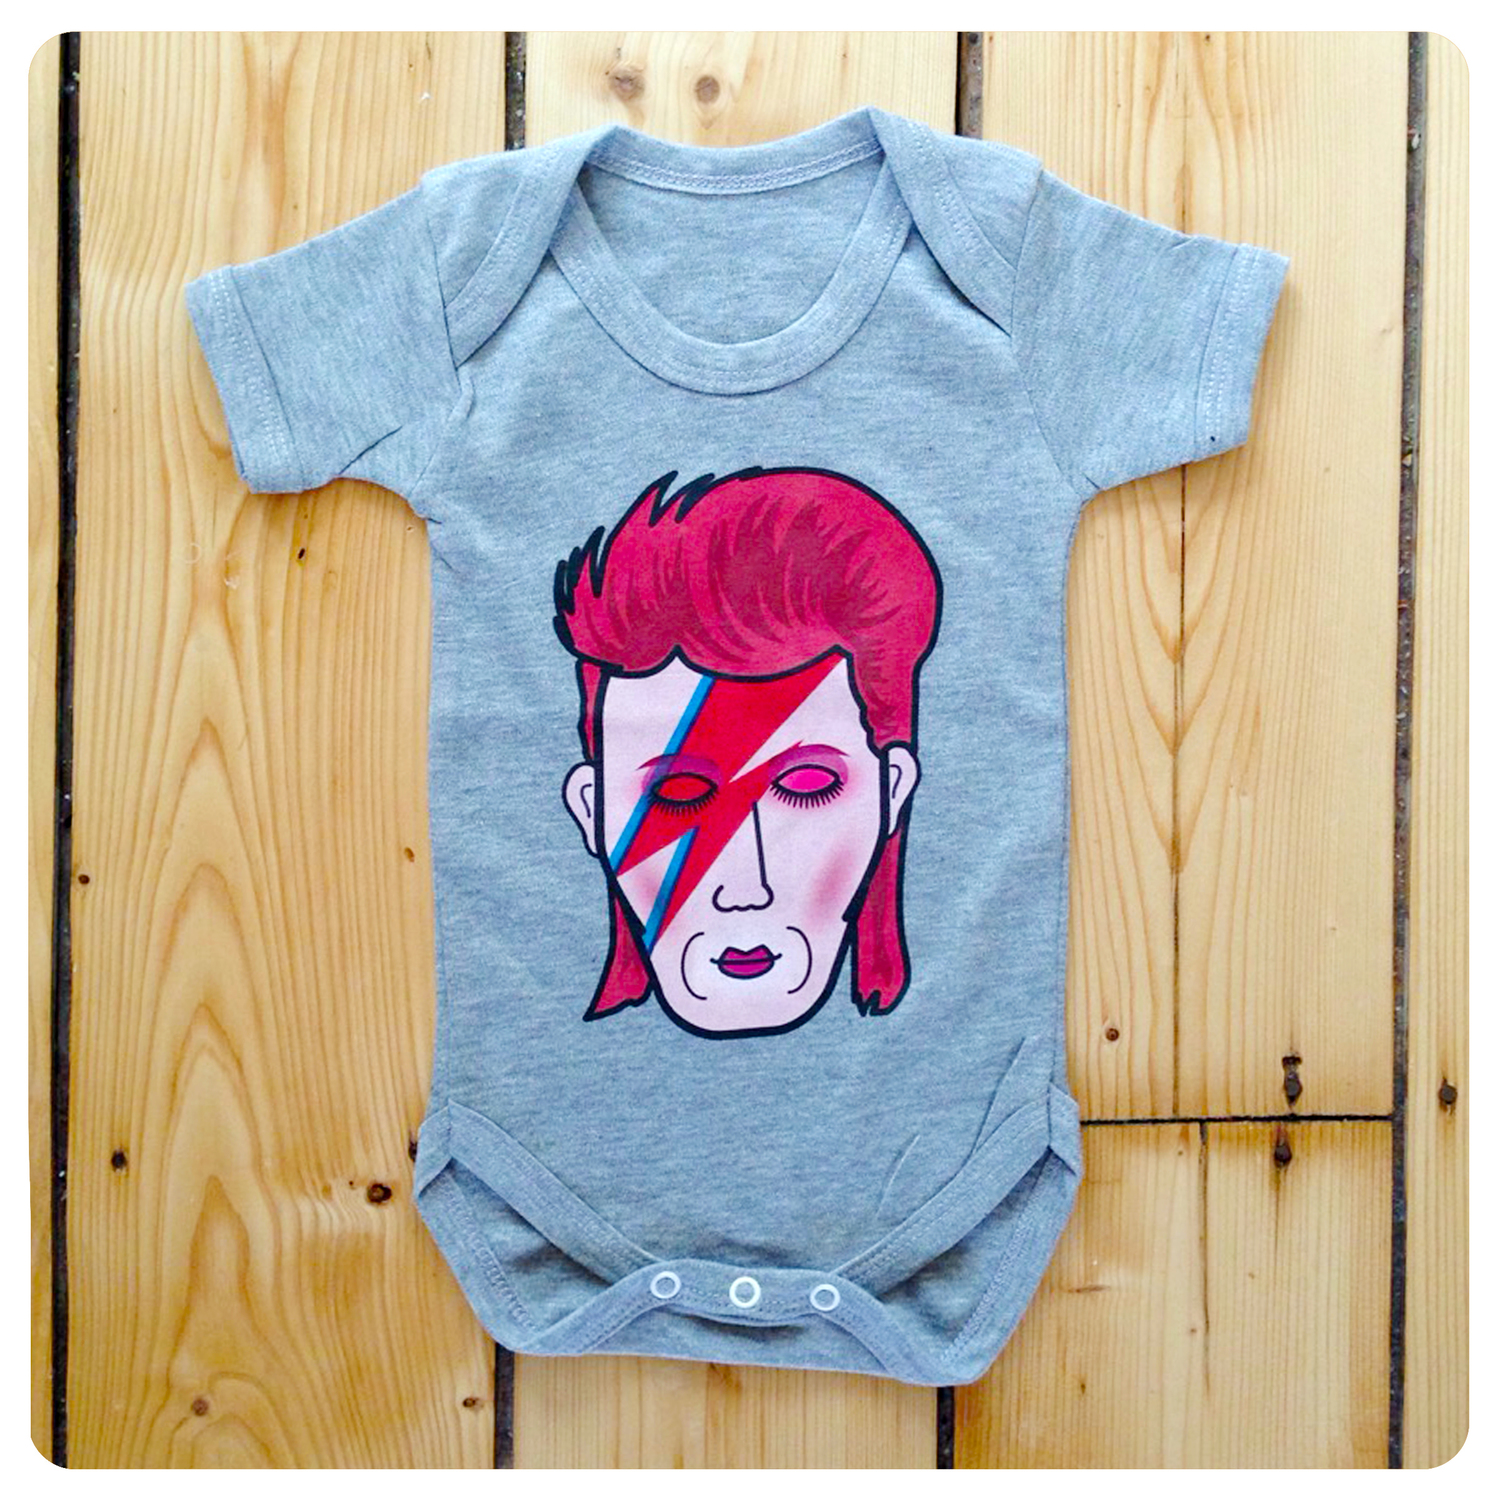 Stardust Bowie baby kids pajama gift set pink grey david bowie ziggy stardust inspired unisex toddler kids baby music christmas gifts